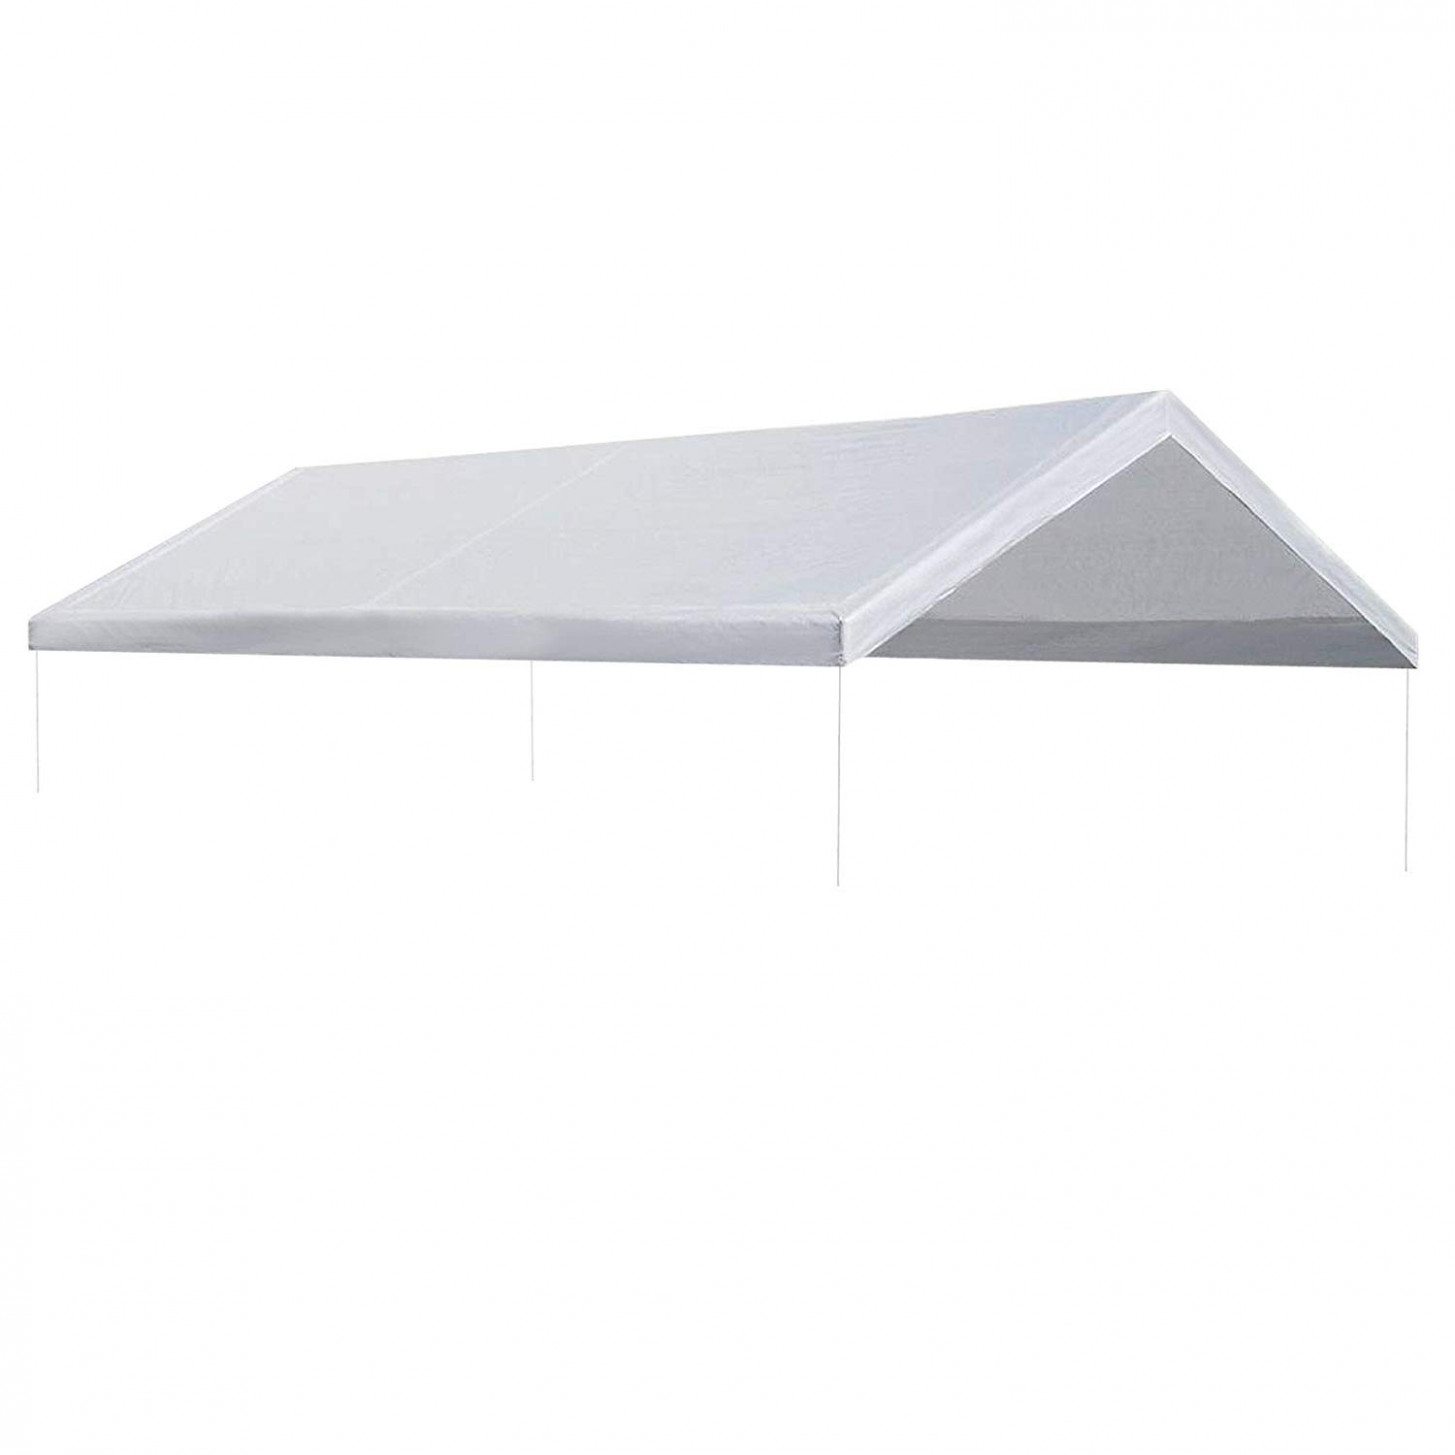 Strong Camel 10'x10' Carport Replacement Canopy Cover For Tent Top Garage Shelter Cover W Ball Bungees (Only Cover, Frame Is Not Included) Carport Replacement Canopy 10x20